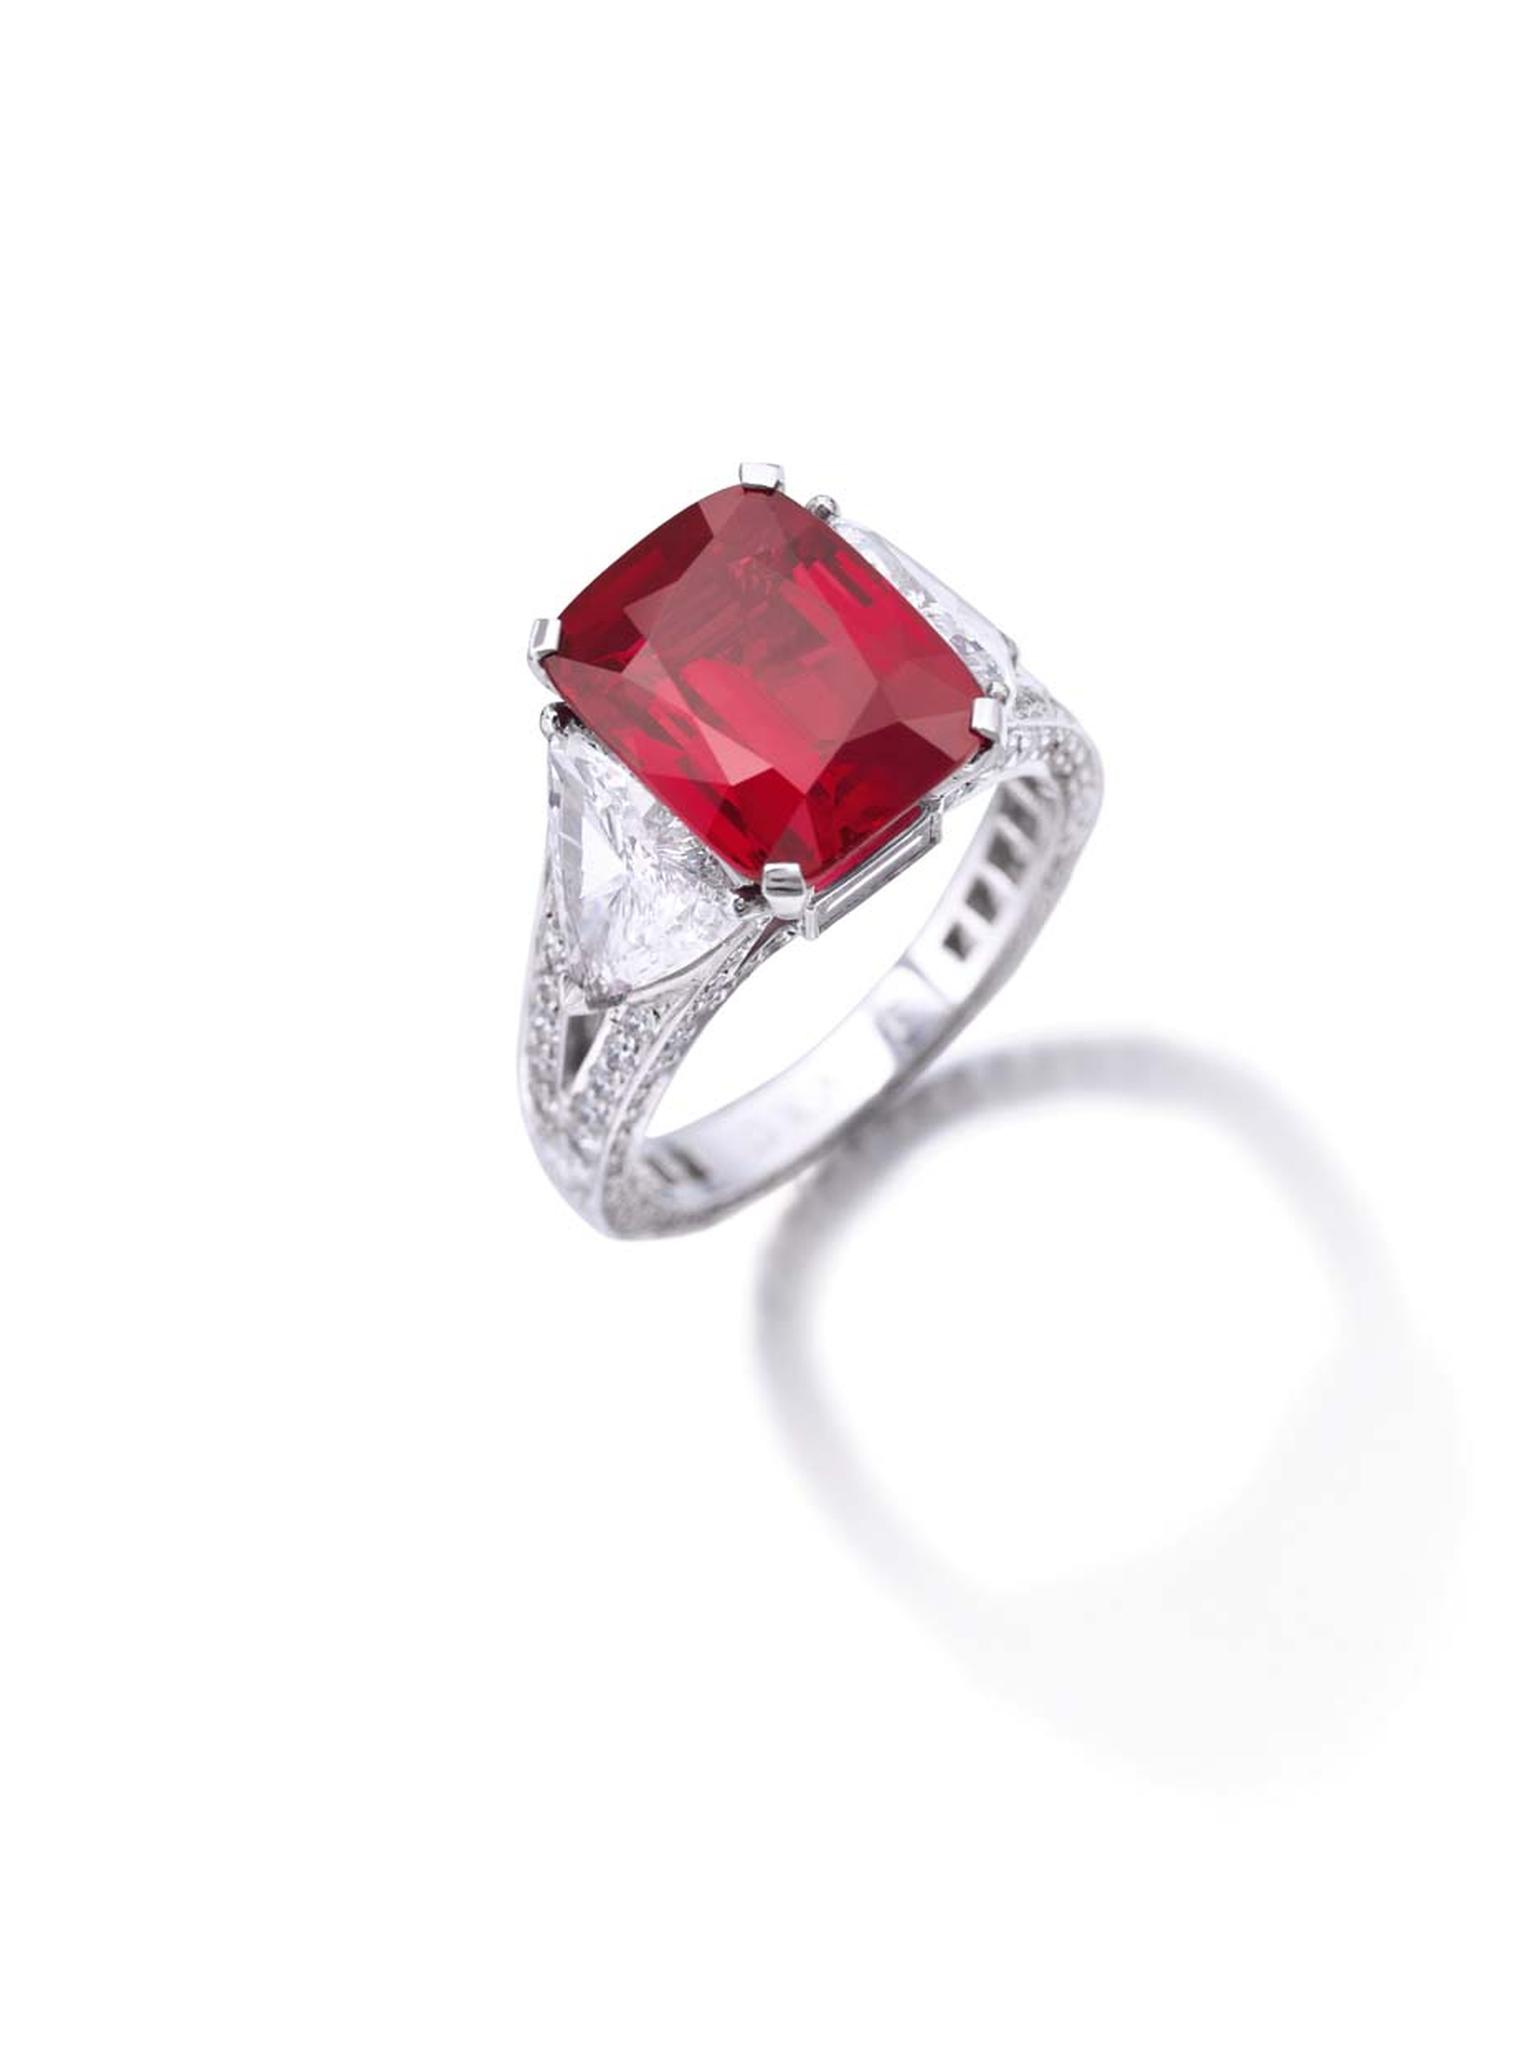 "A Graff Ruby ring featuring a cushion-cut 8.62ct Burmese ruby in a ""pigeon's blood"" shade of red (estimate:US $6.8 - 9 million)."